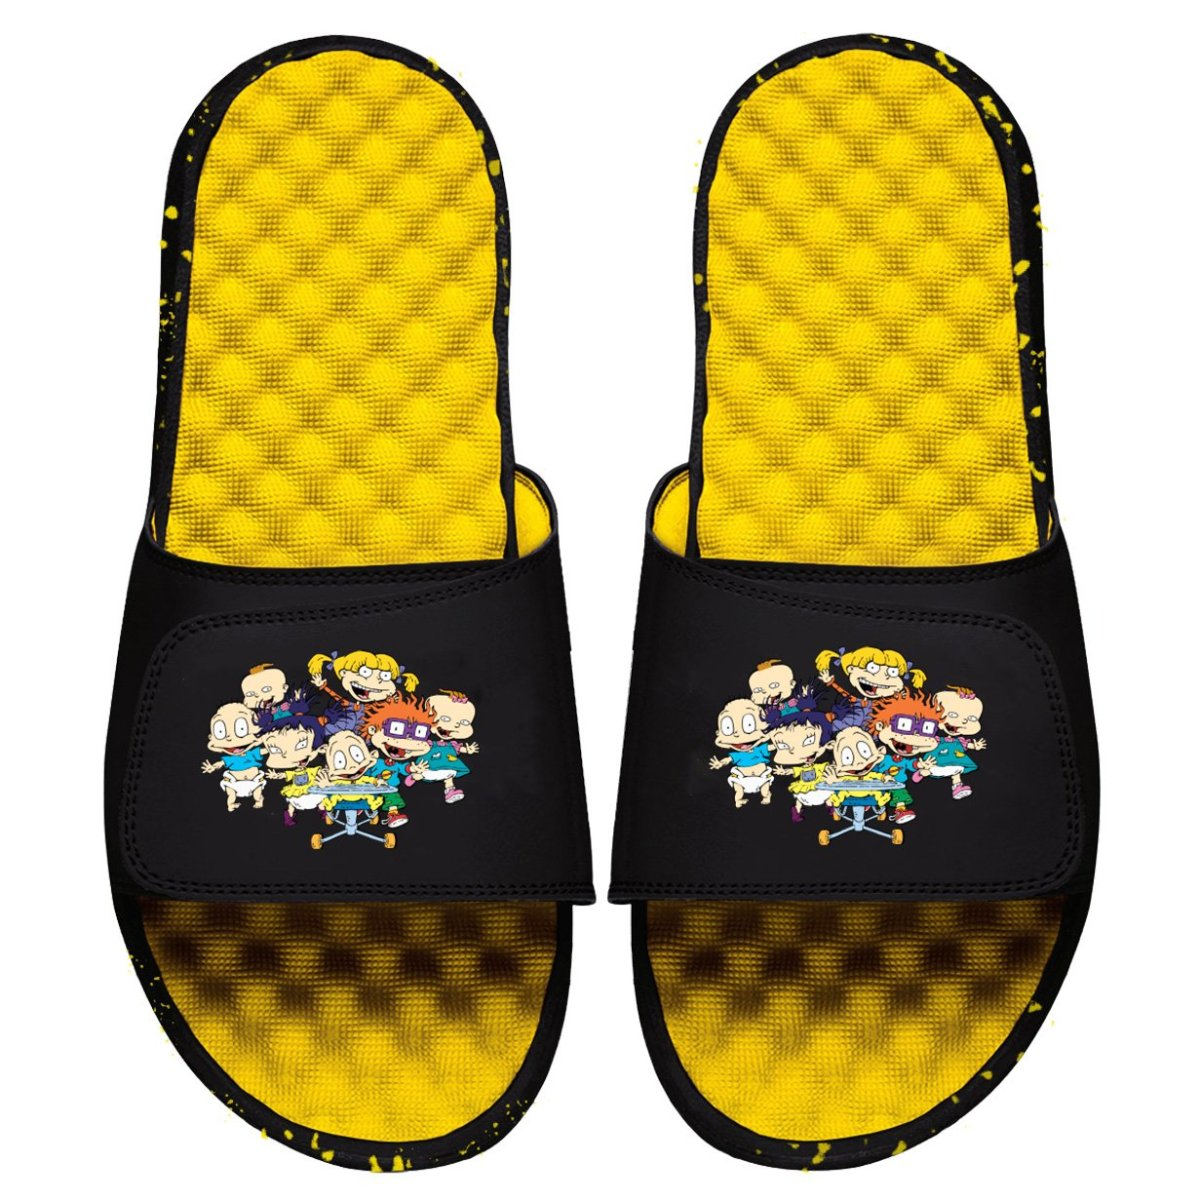 Rugrats theme slides